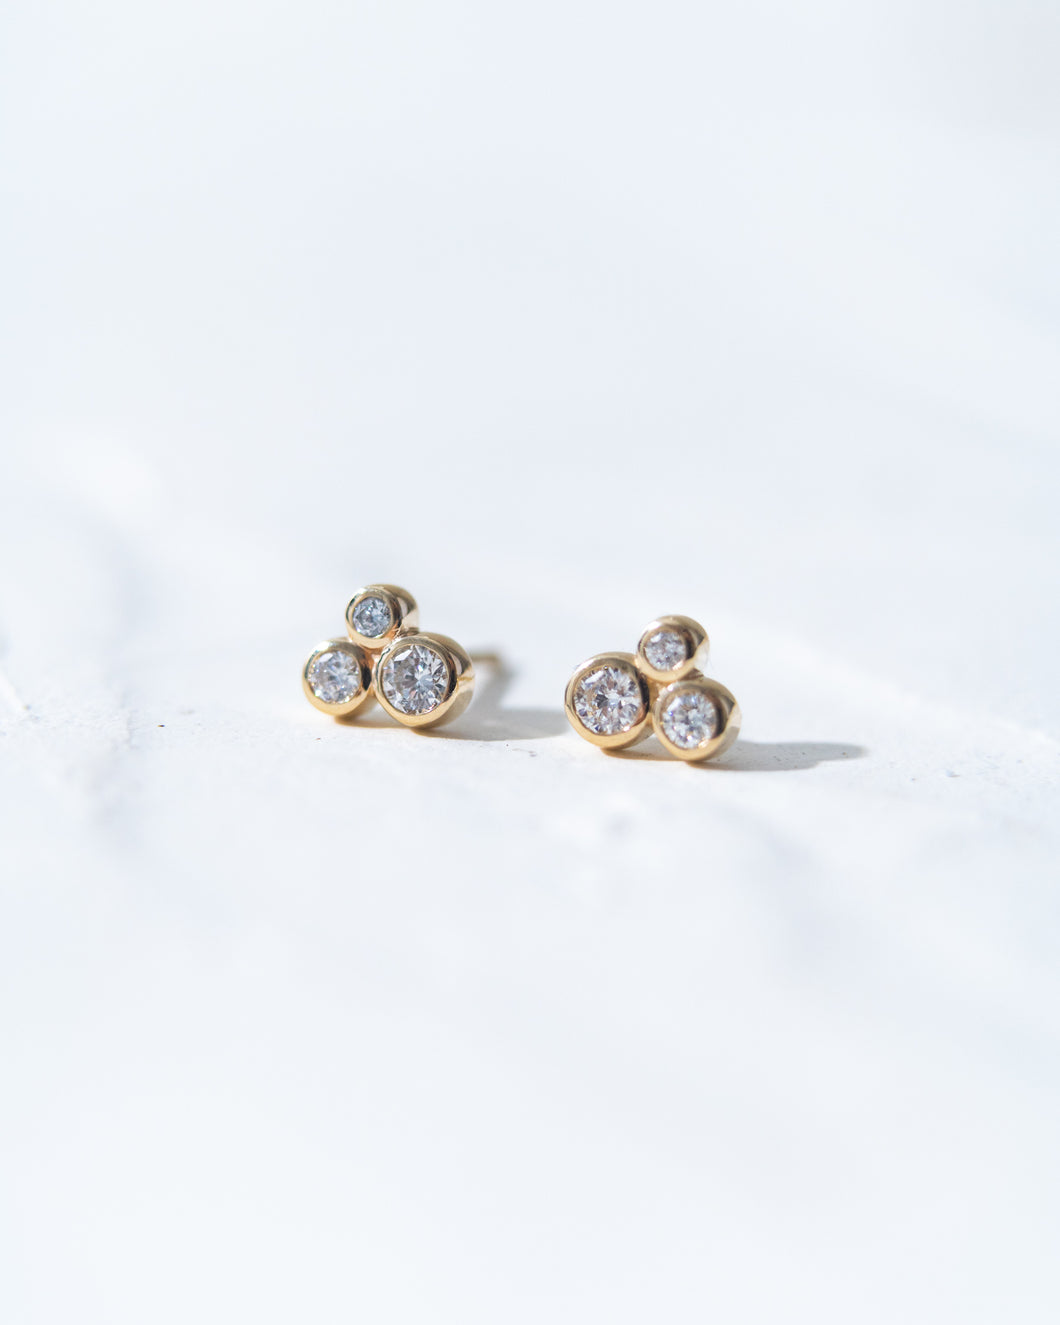 Diamond Cluster Earrings - READY TO SHIP